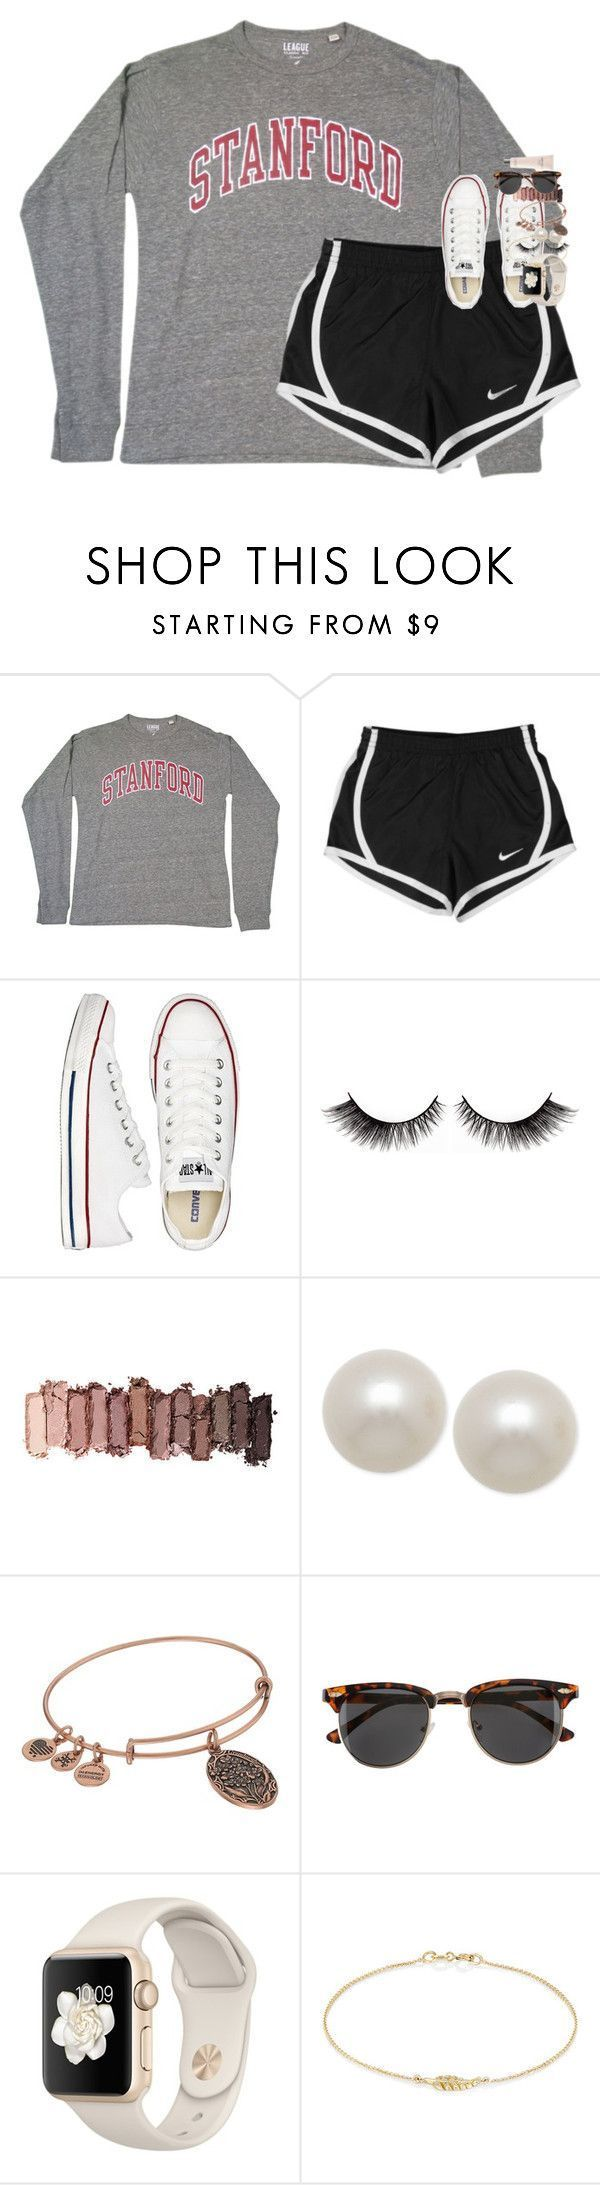 14 athletic outfits for teens who are worn at school as soon as possible